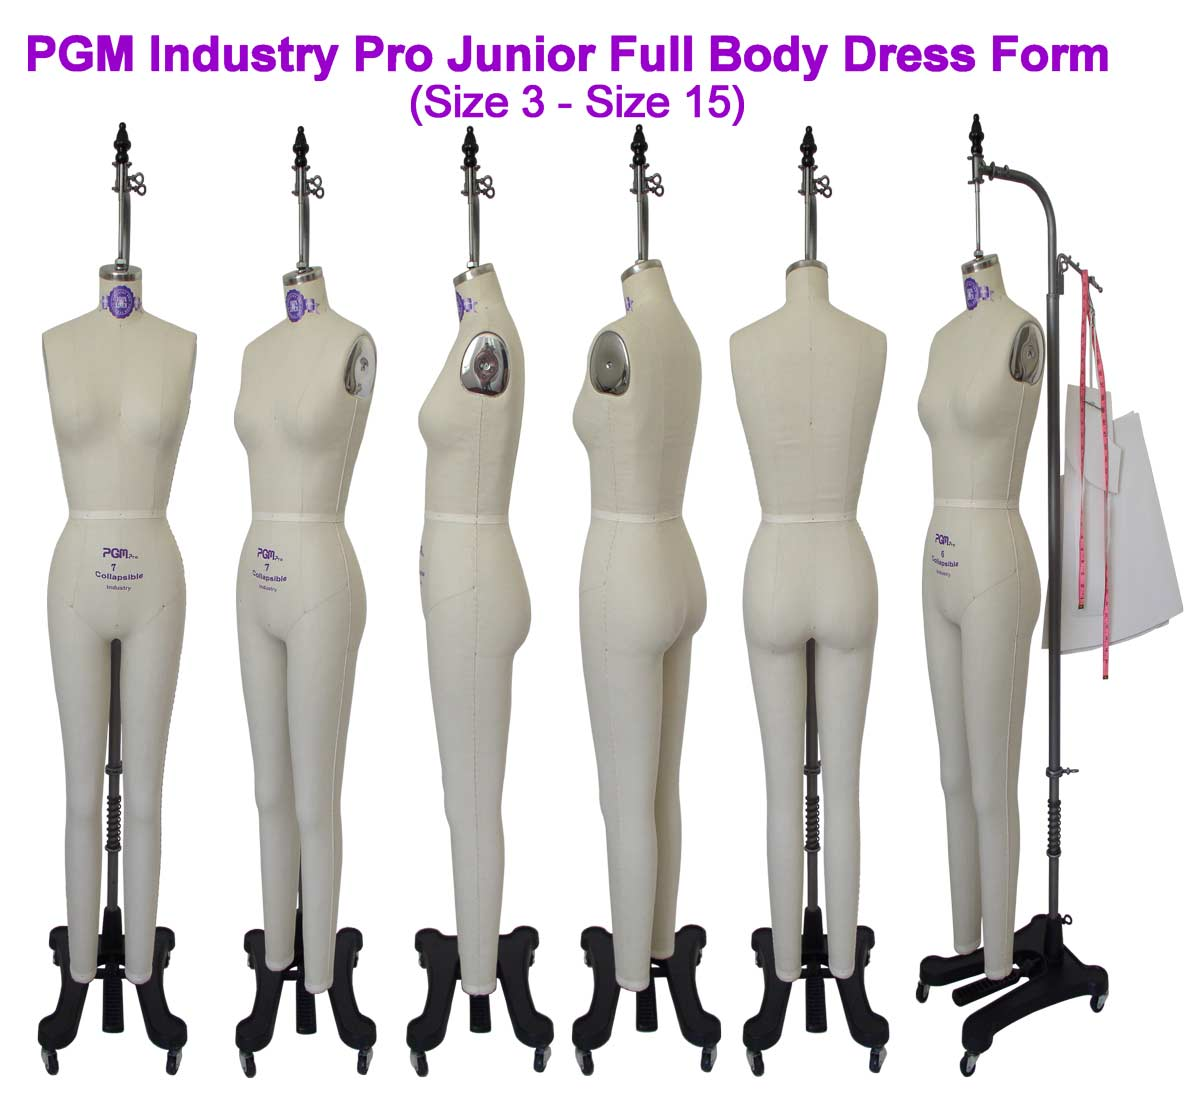 PGM Junior Full Body Dress Form (Industry Pro 605A)